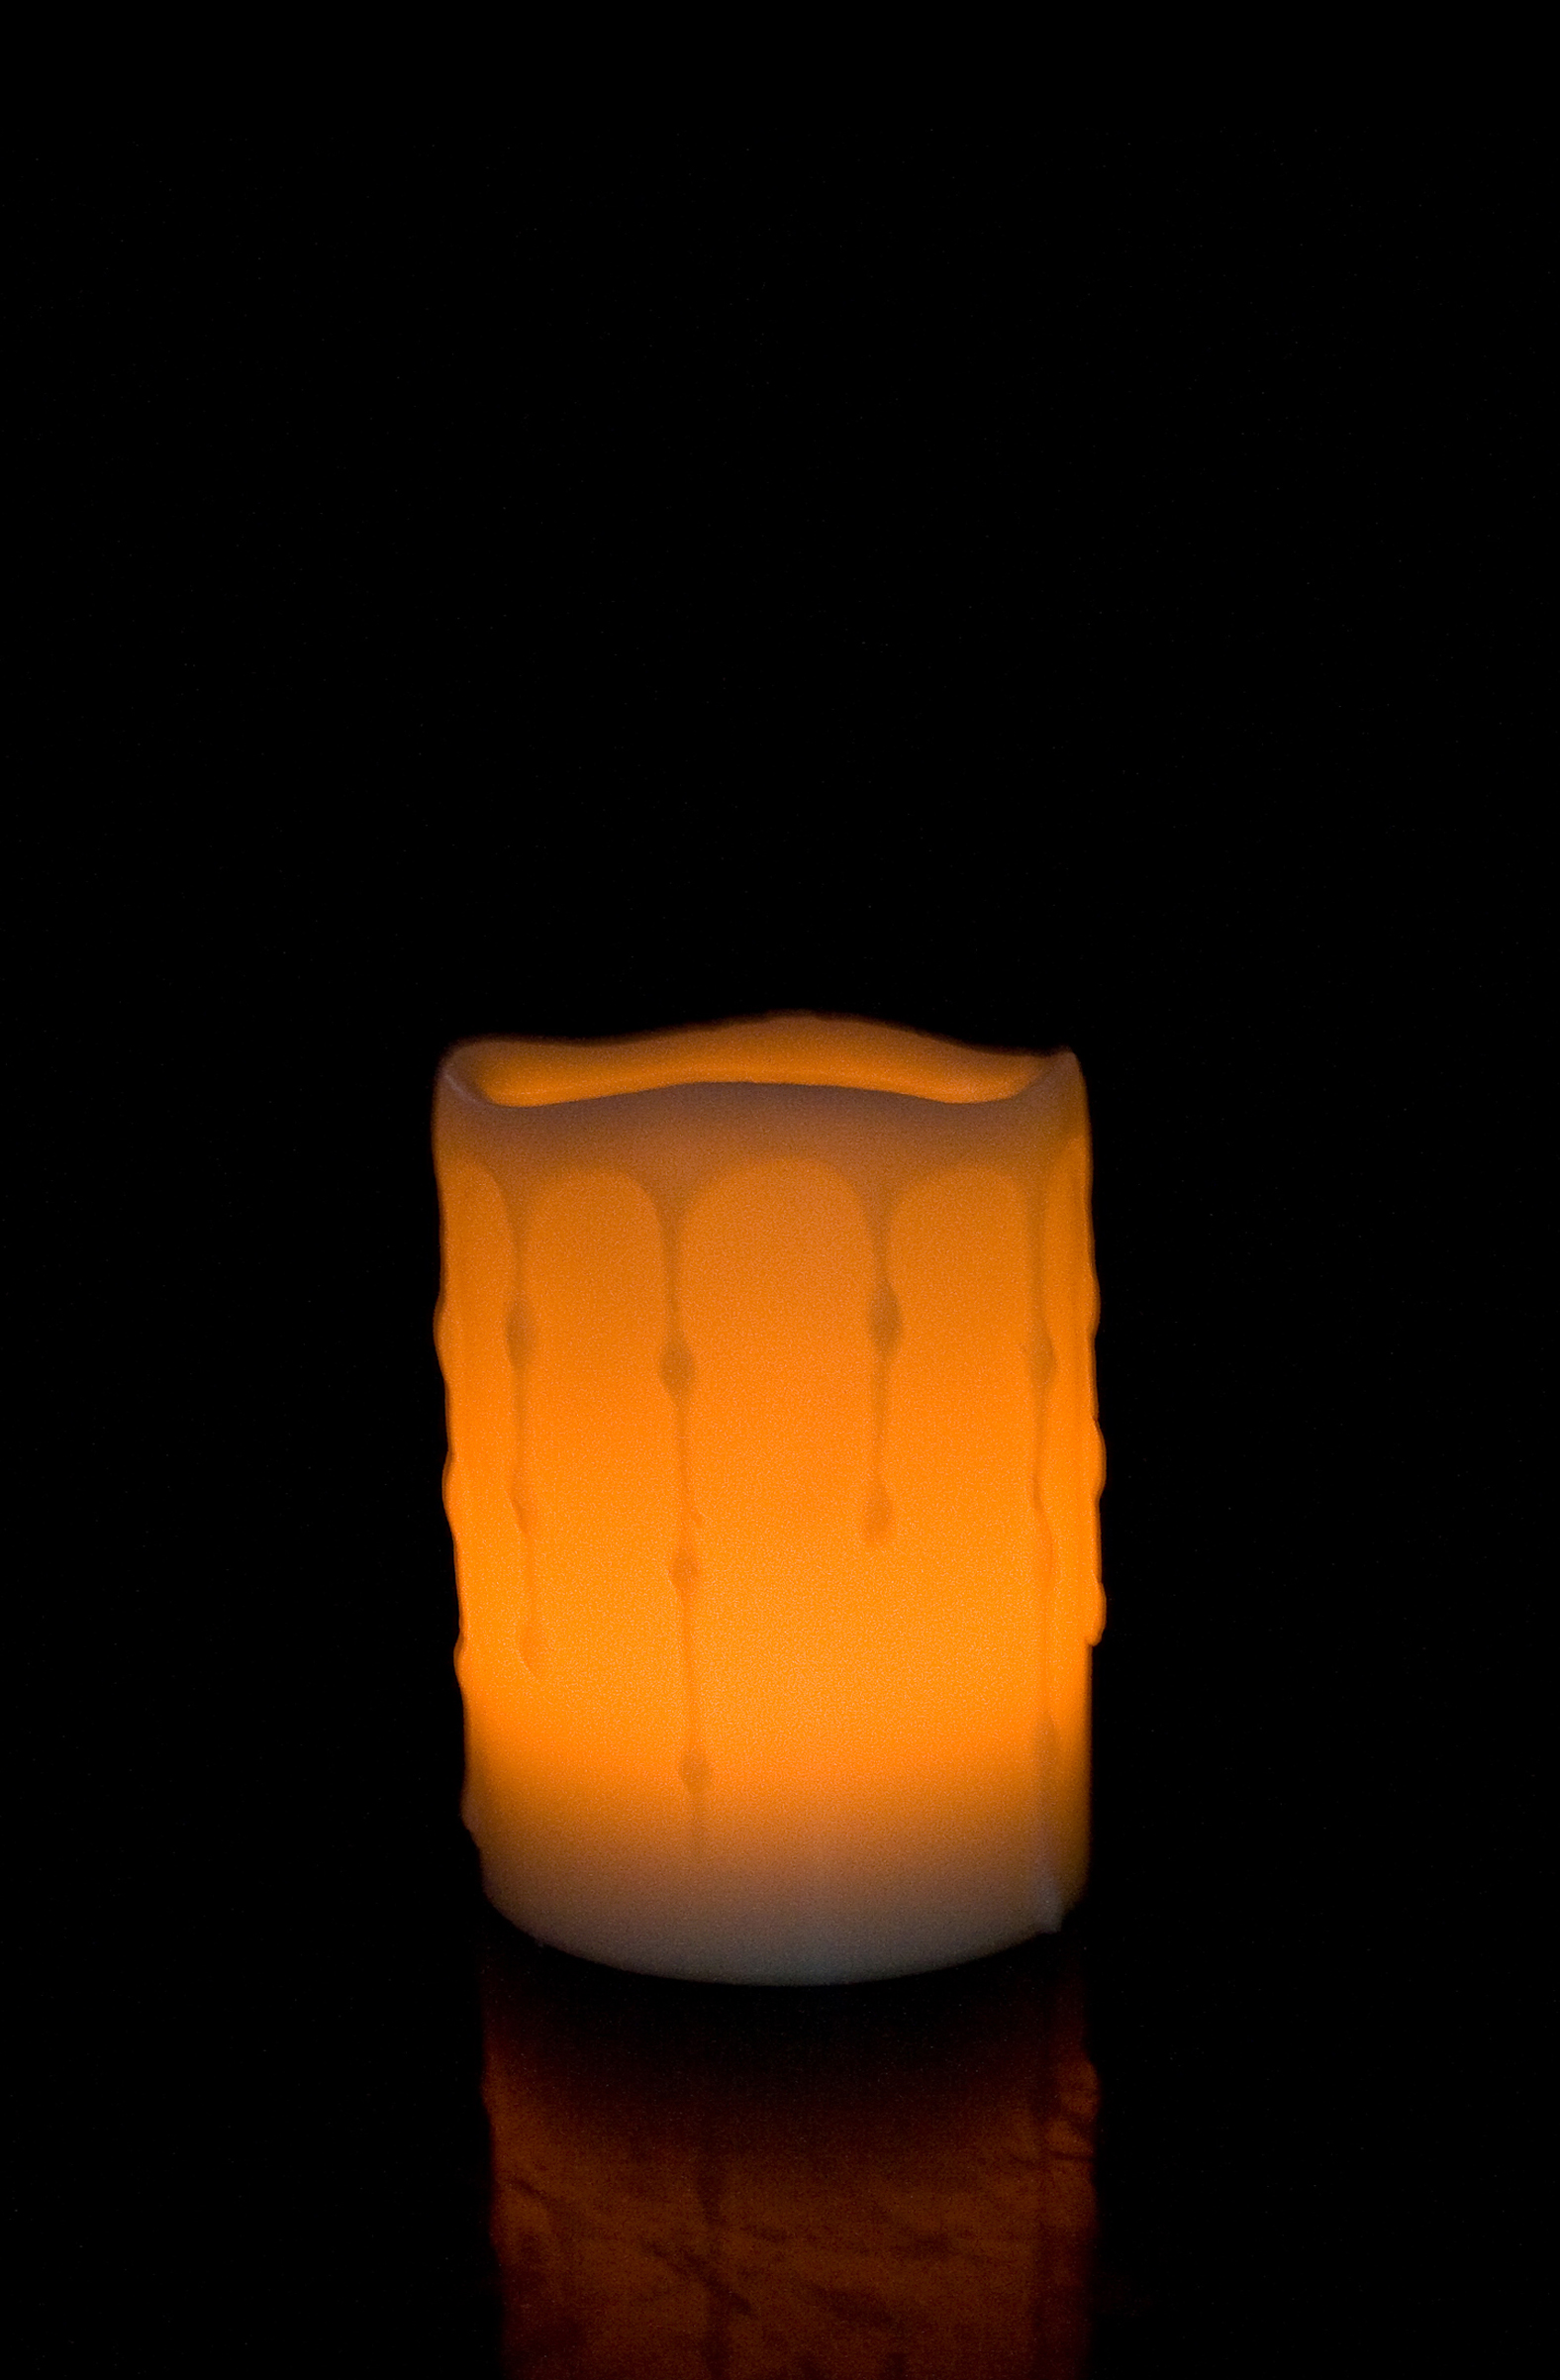 4 Inch Flameless Blow On-Off Pillar Candle - Melted Edge - Yellow